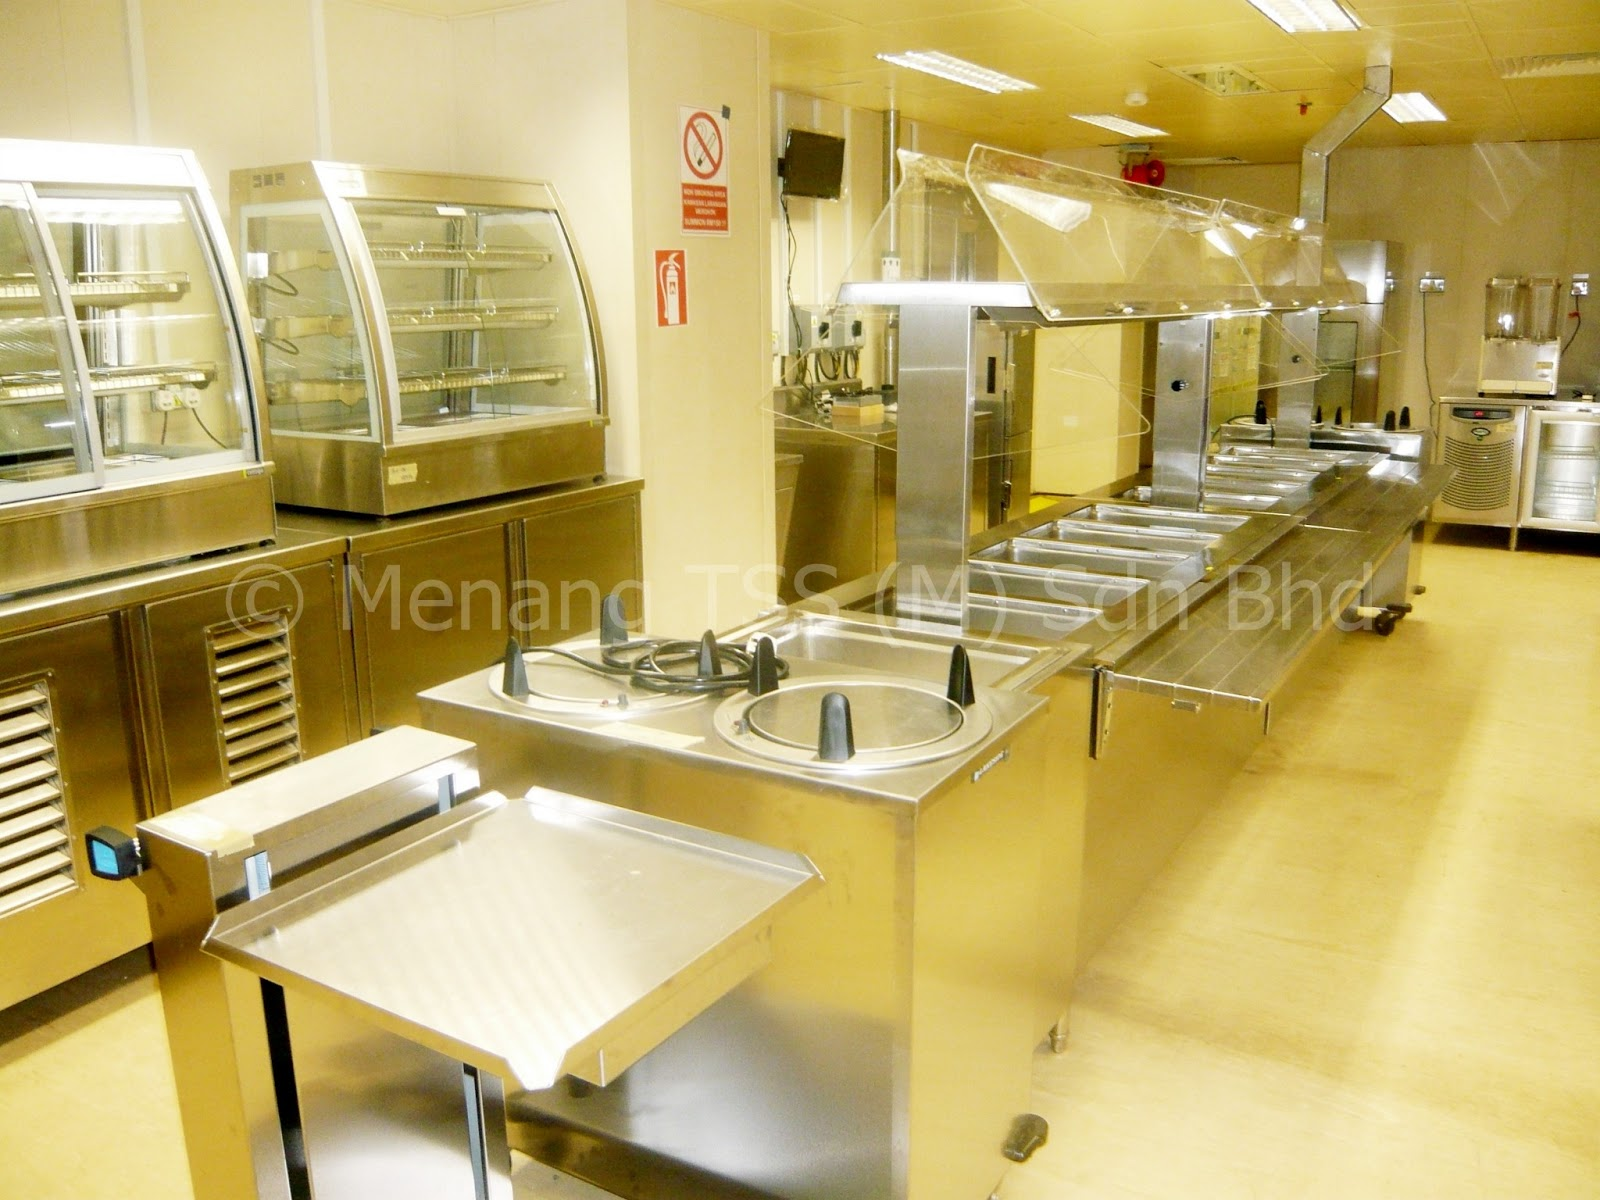 Commercial Kitchen amp Galley Equipment